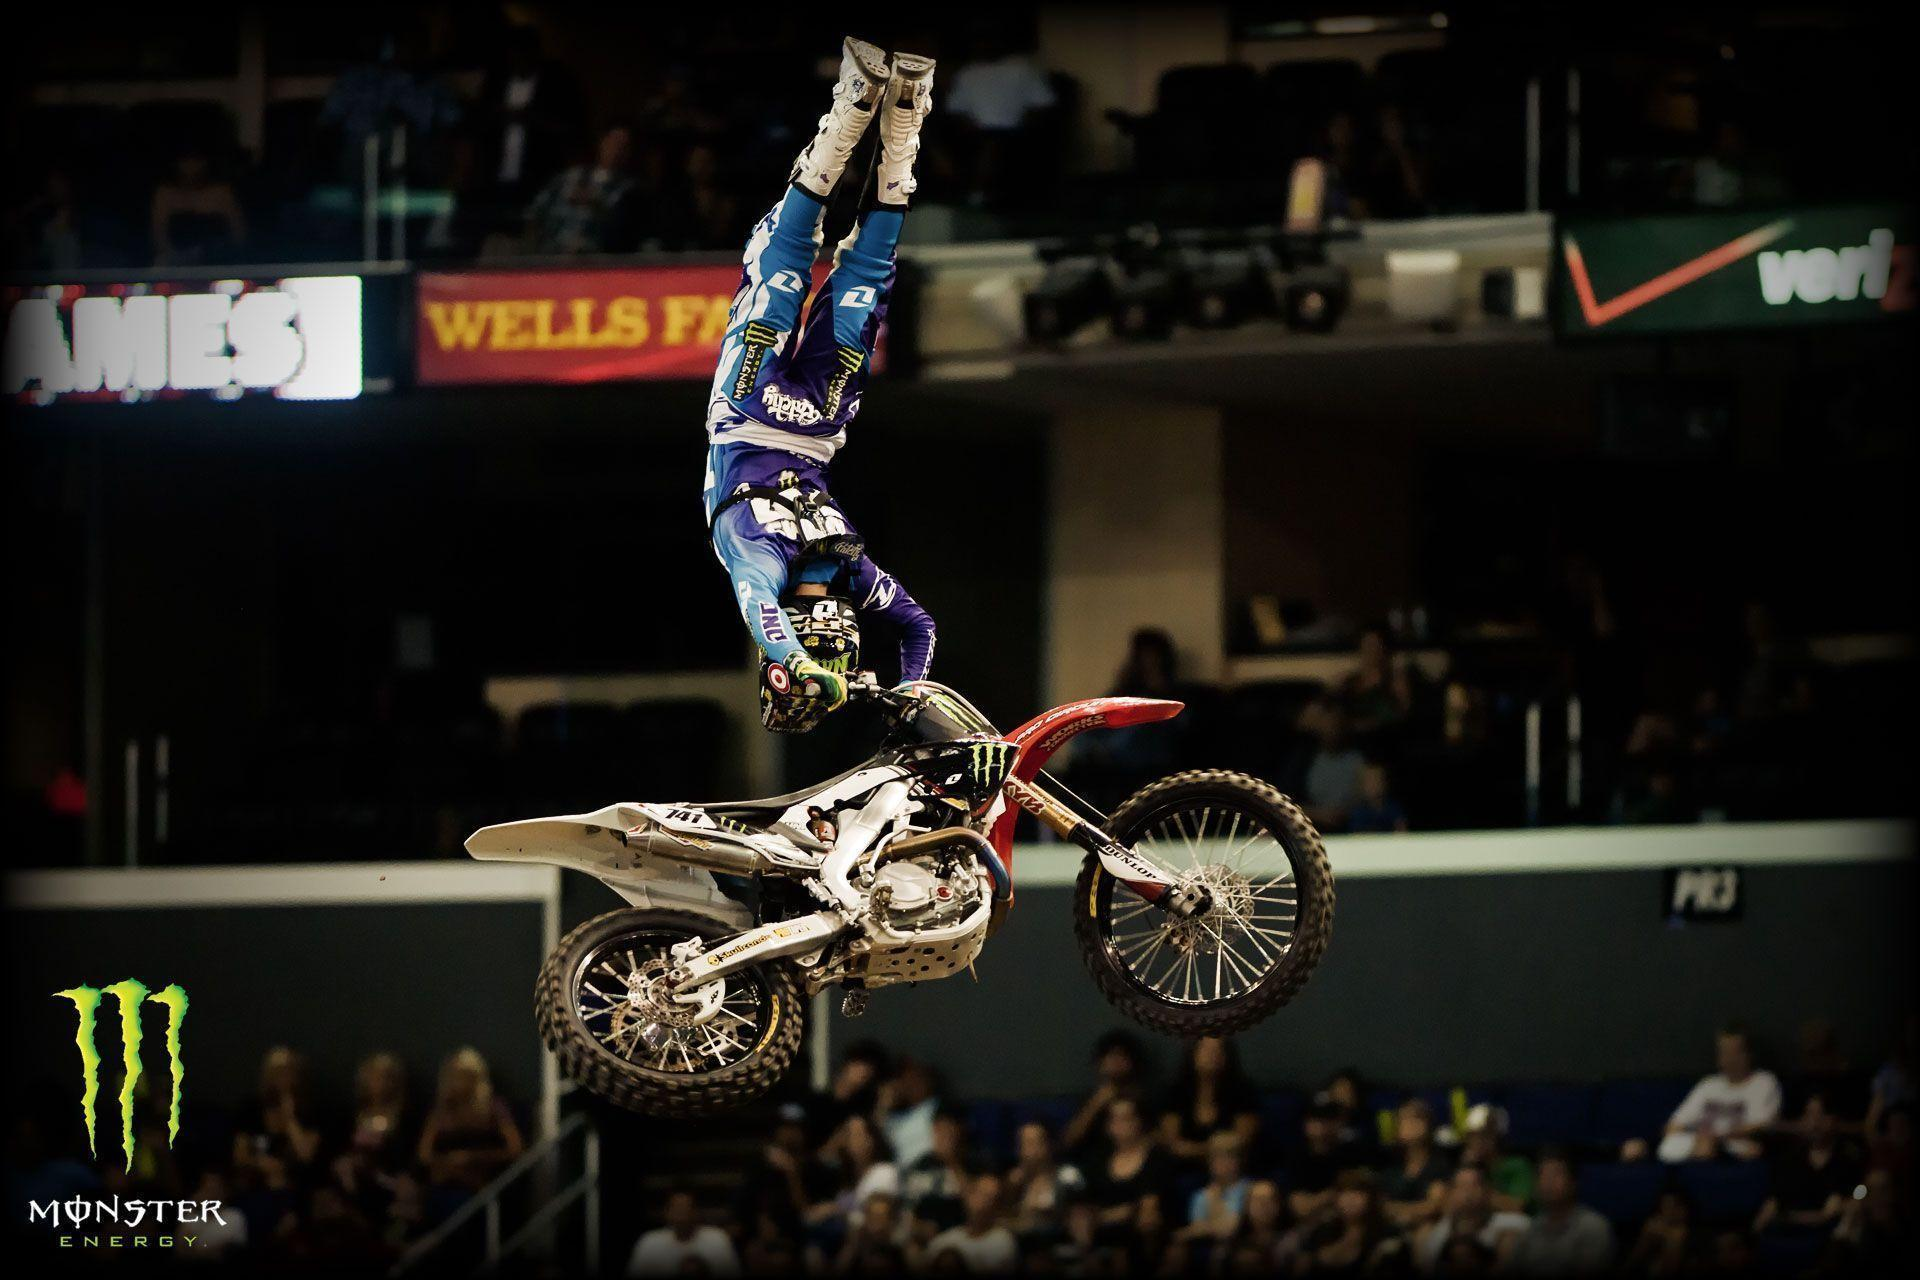 X Games 17 Monster Energy Wallpapers